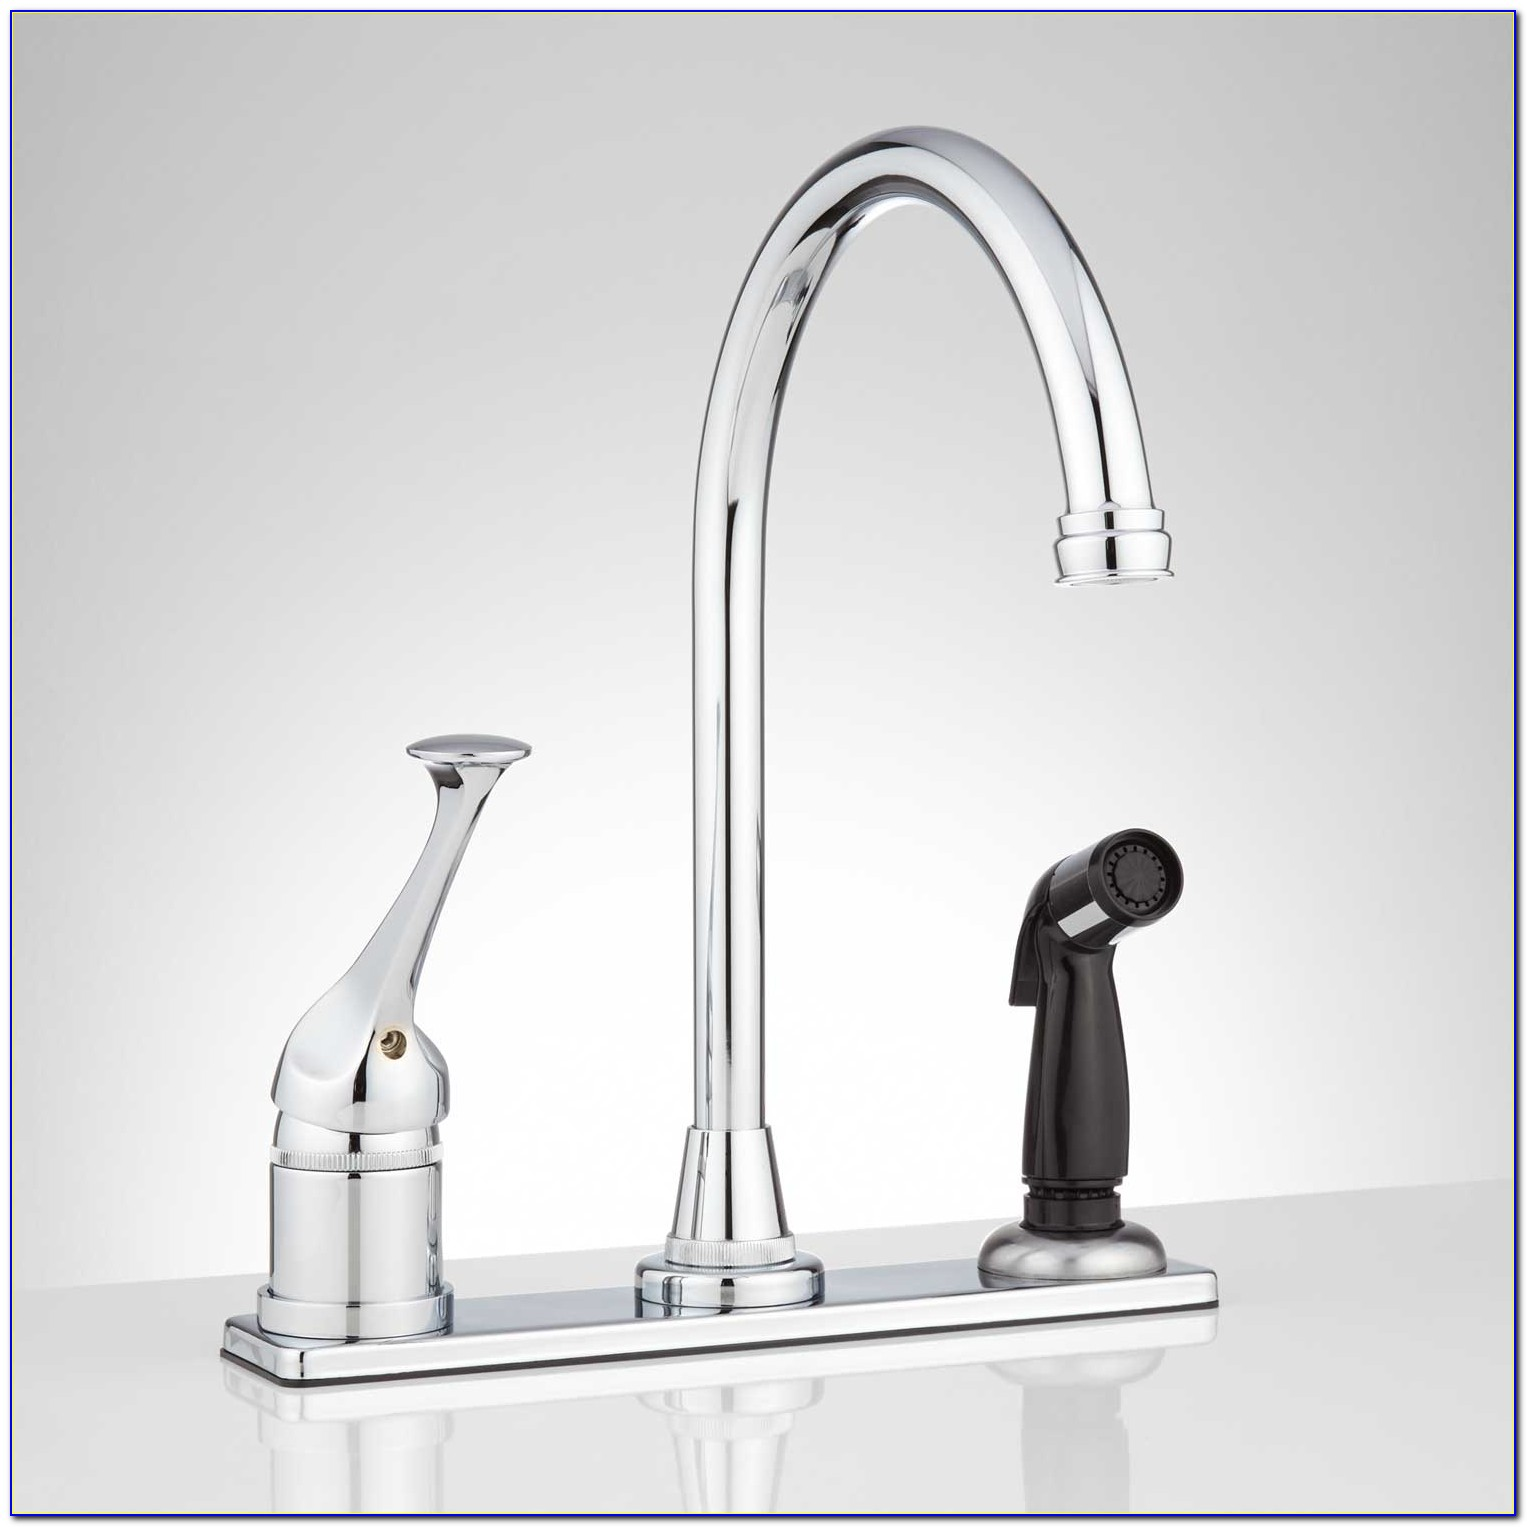 Slop Sink Faucet With Sprayer